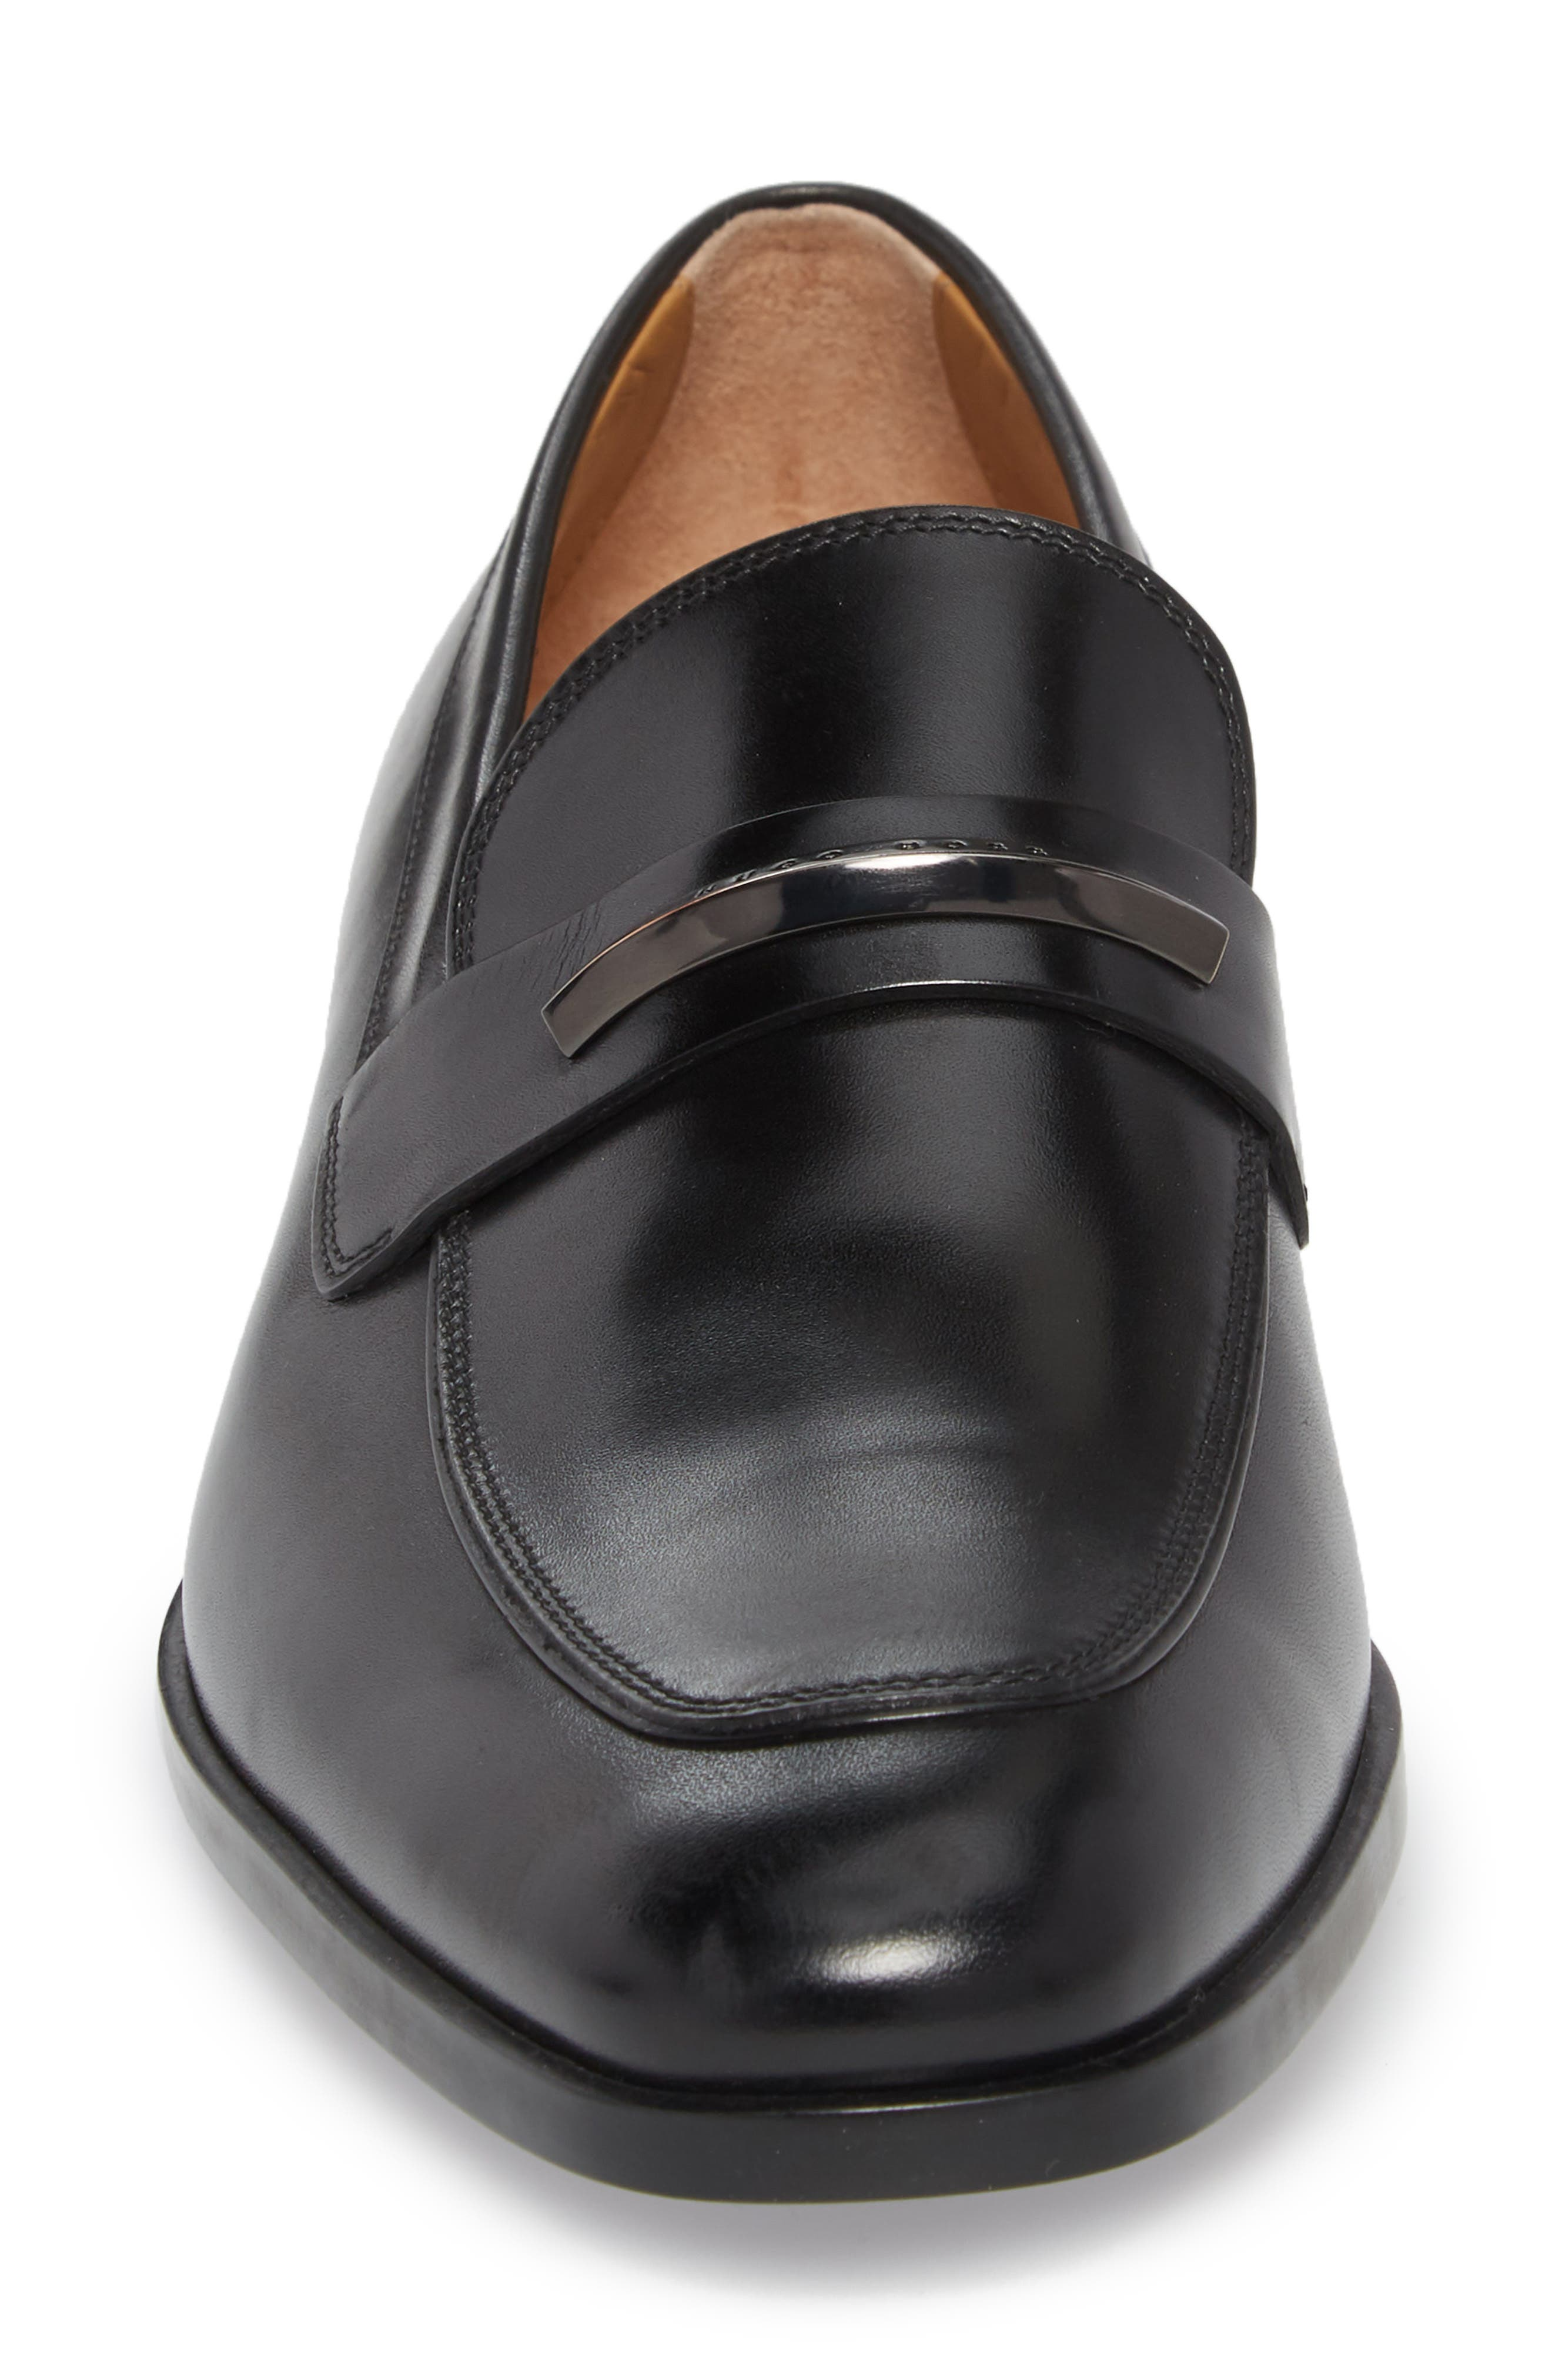 Hugo Boss Portland Solid Bit Loafer,                             Alternate thumbnail 4, color,                             BLACK LEATHER